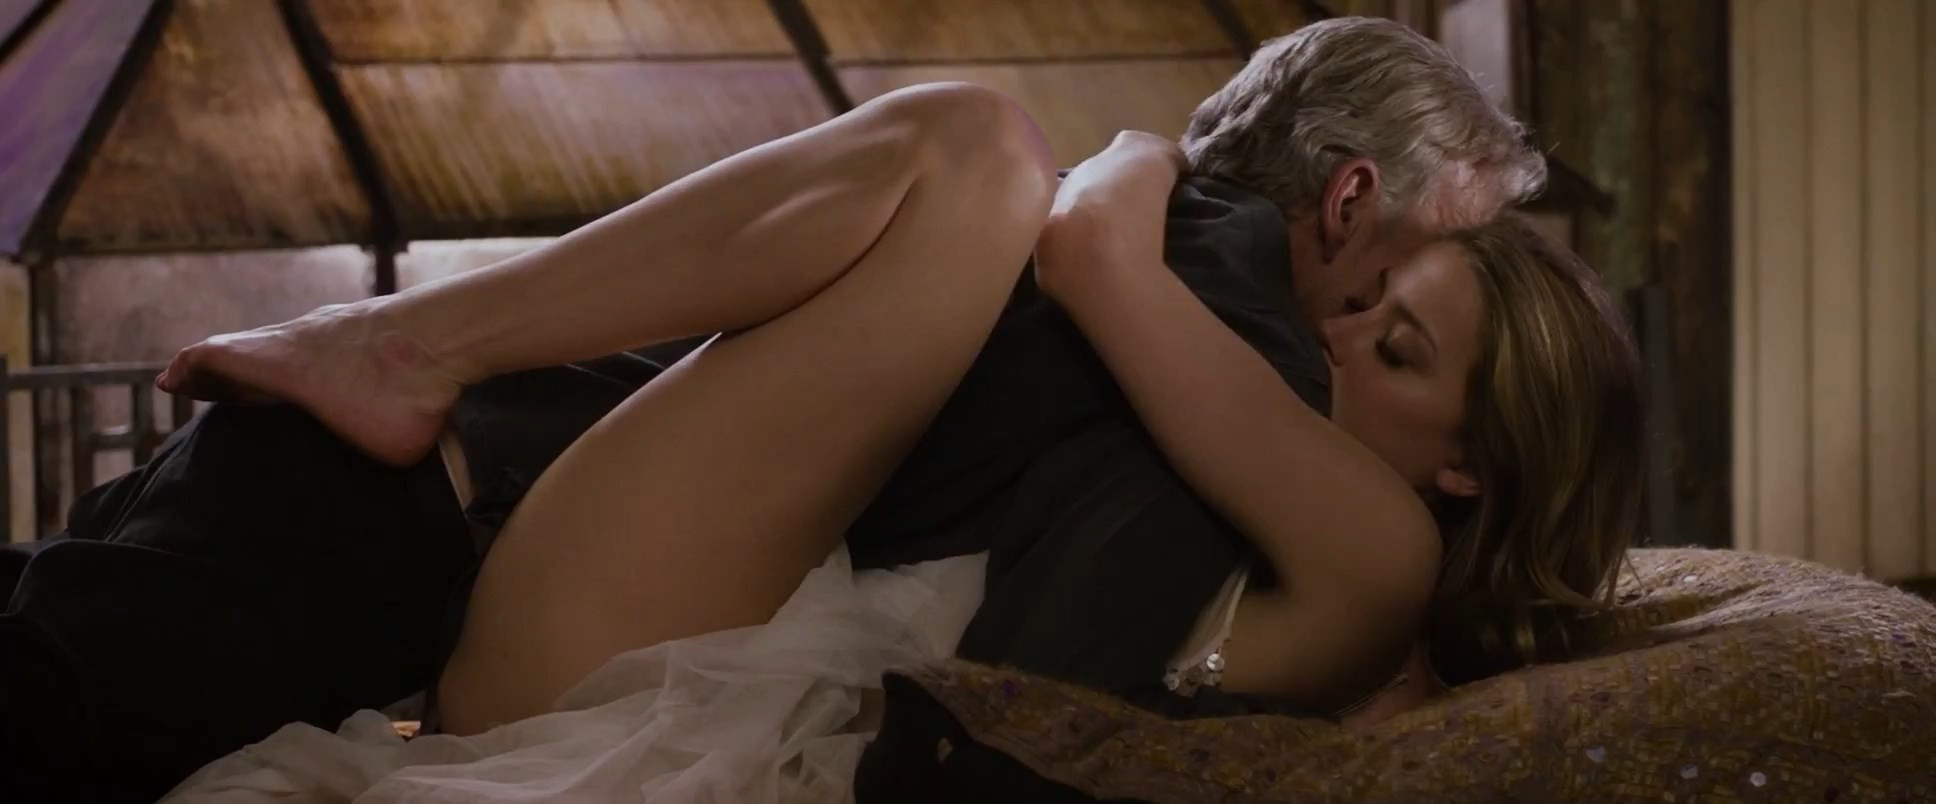 Amber Heard Nude and Sexy TheFappening.nu 24393c63b230b49823.jpg